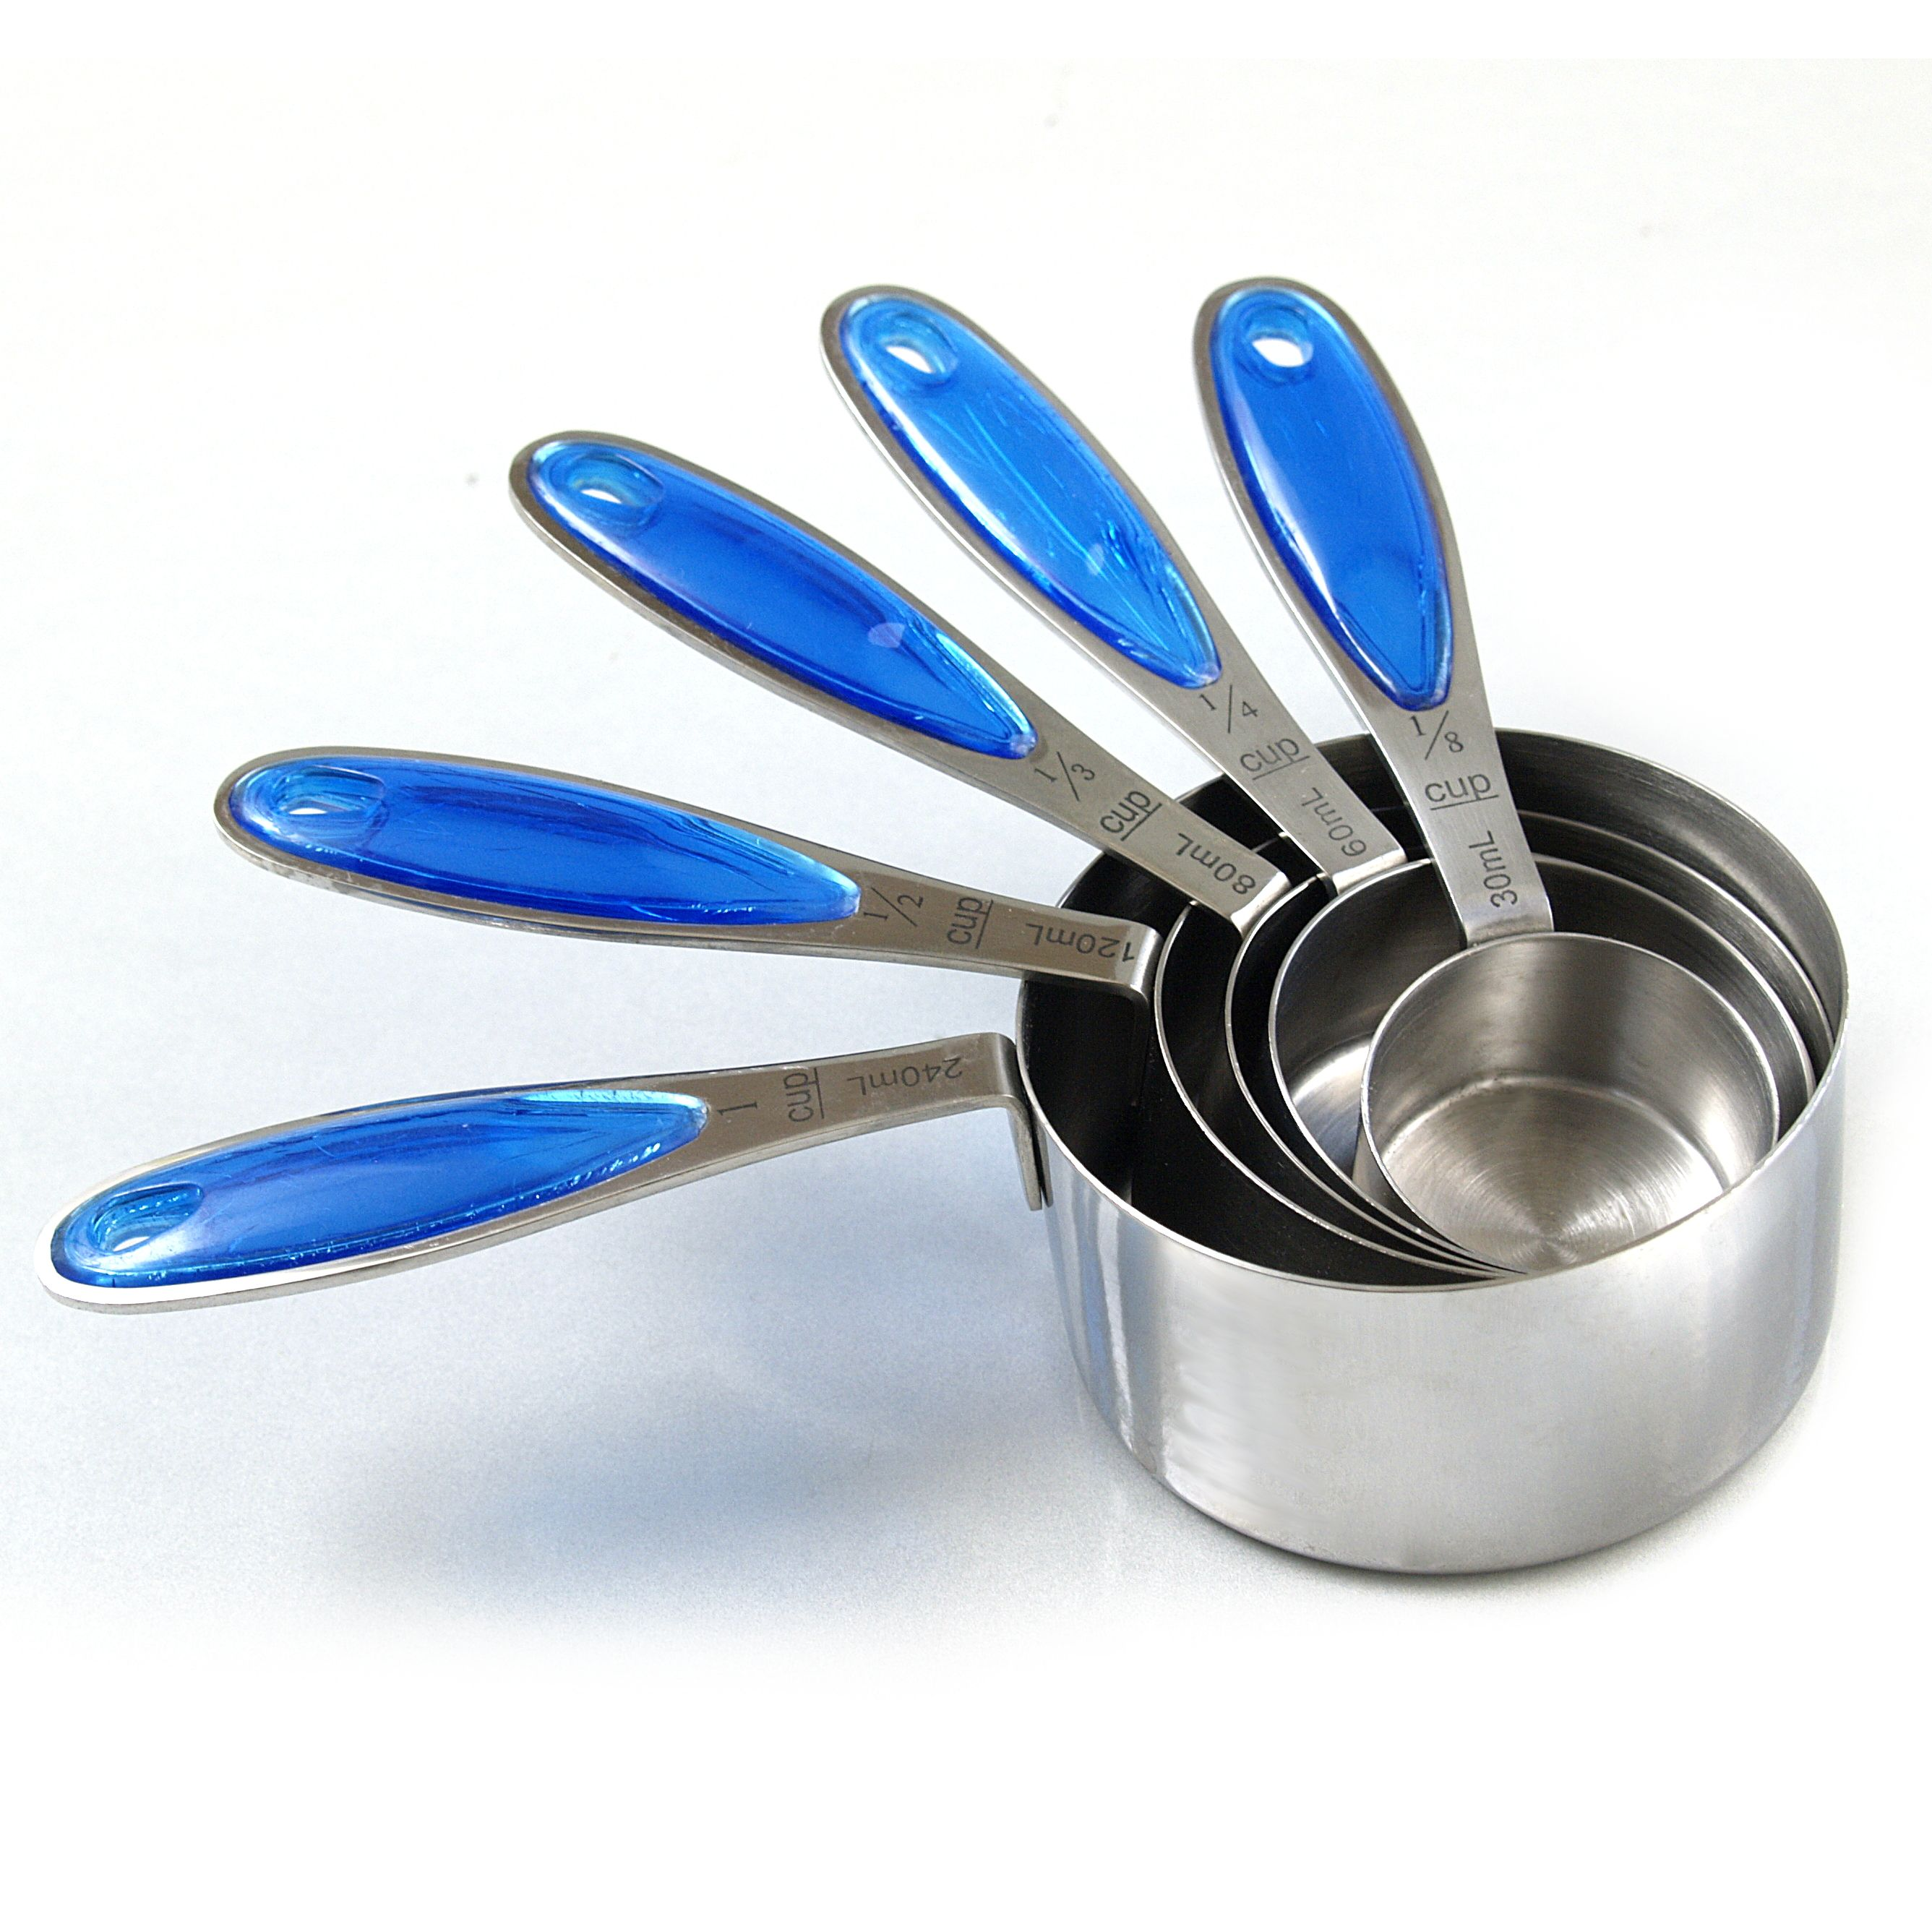 RSVP Endurance Splash 18/10 Stainless Steel Measuring Cups with Blue Grip